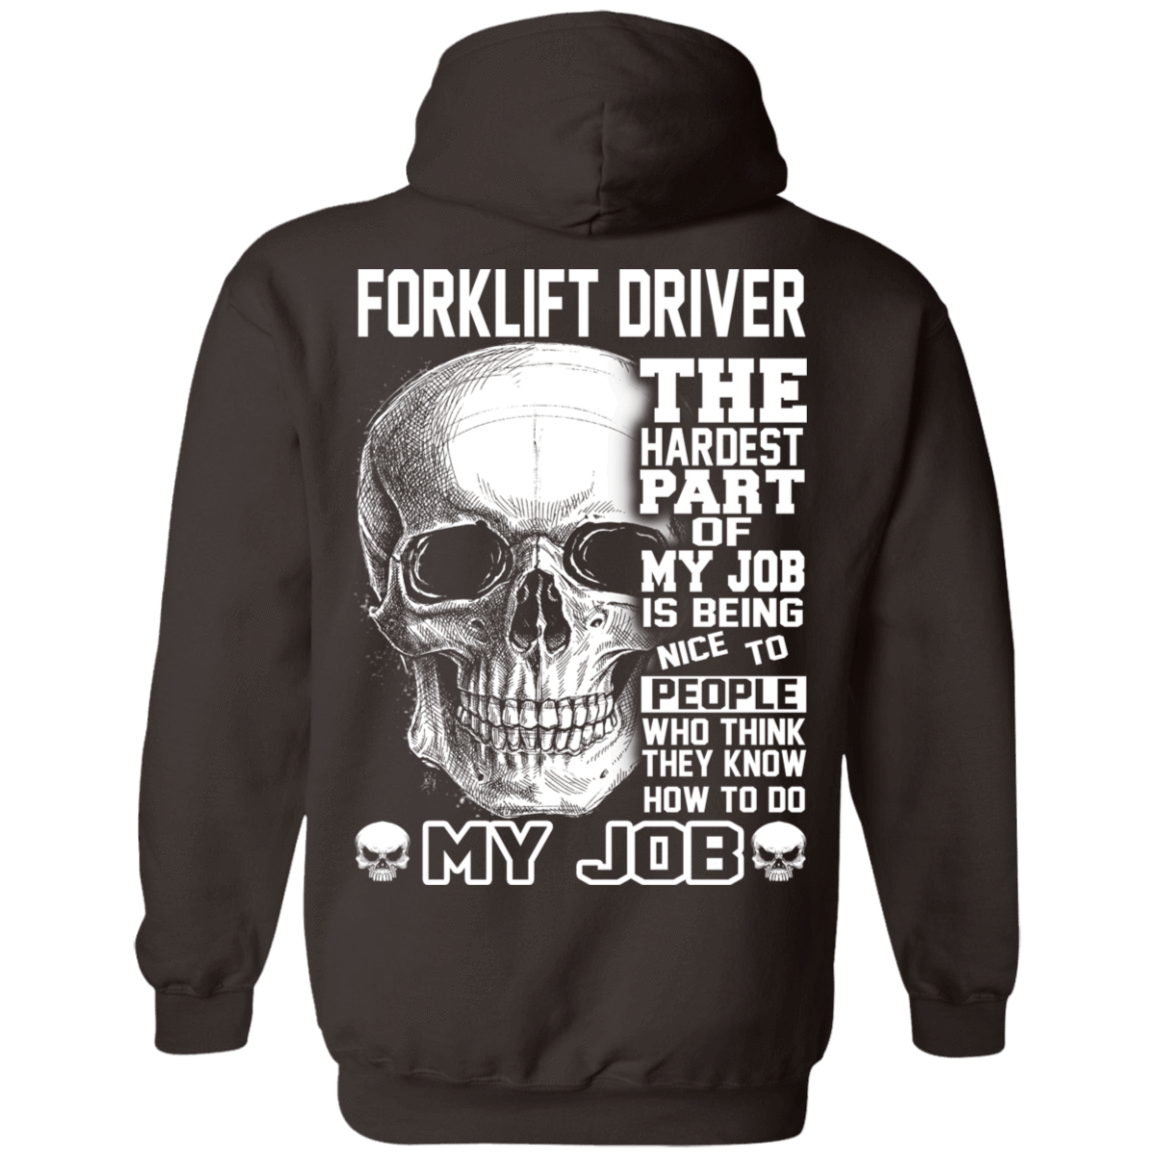 Forklift Driver The Hardest Part Of My Job 541-4752-71609237-23095 - Tee Ript